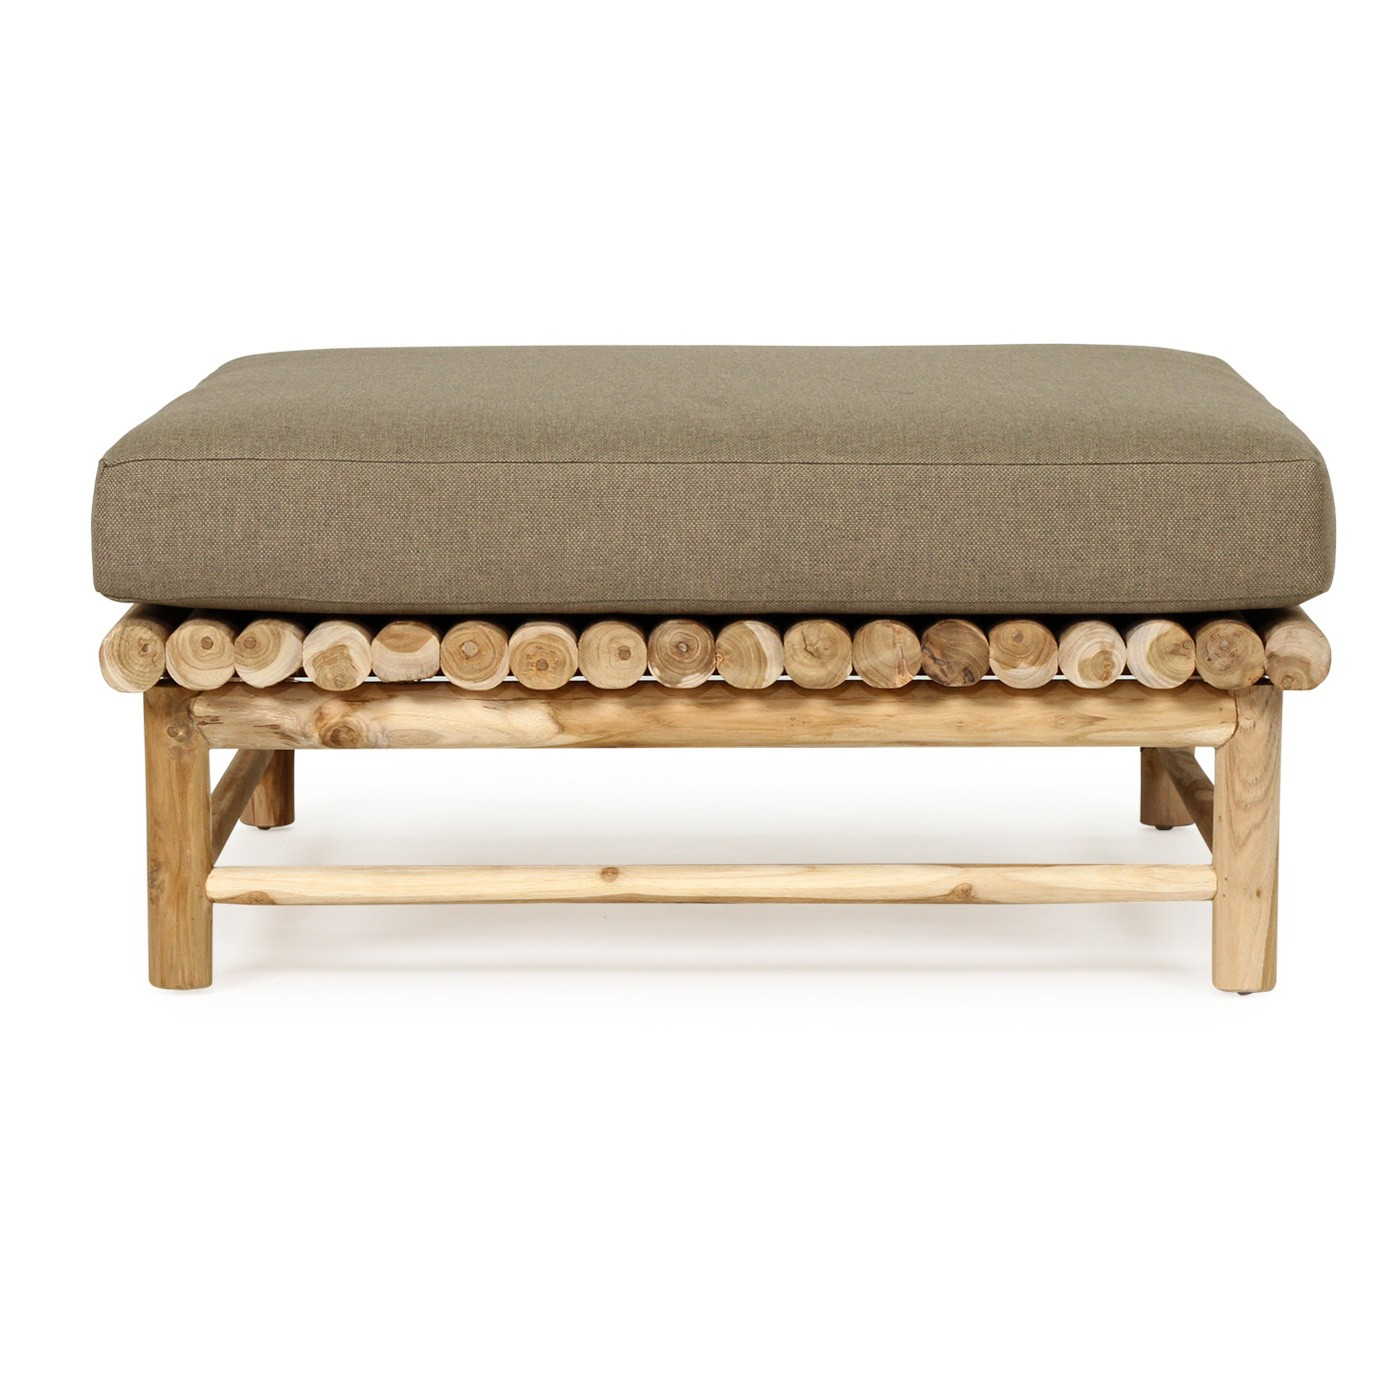 Neveah Teak Timber Square Coffee Table with Cushion, 90cm